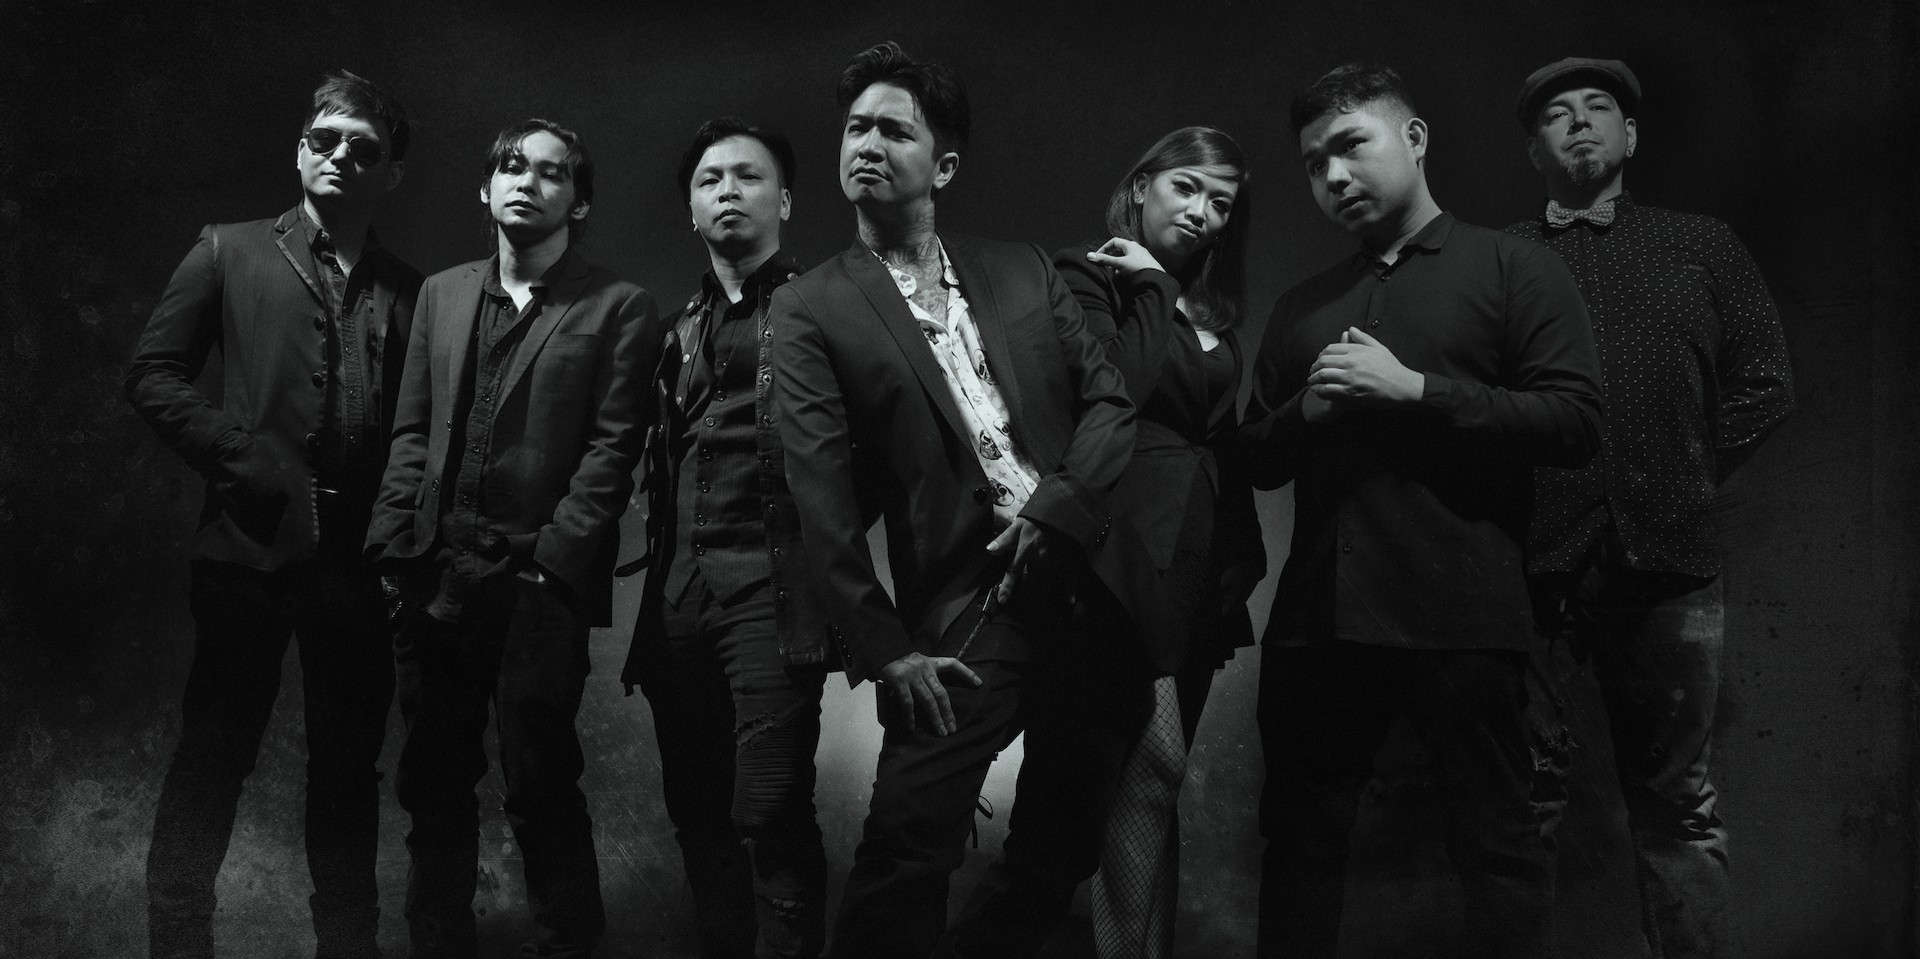 Mr. Bones and the Boneyard Circus to celebrate 10th anniversary with Halloween party and album launch